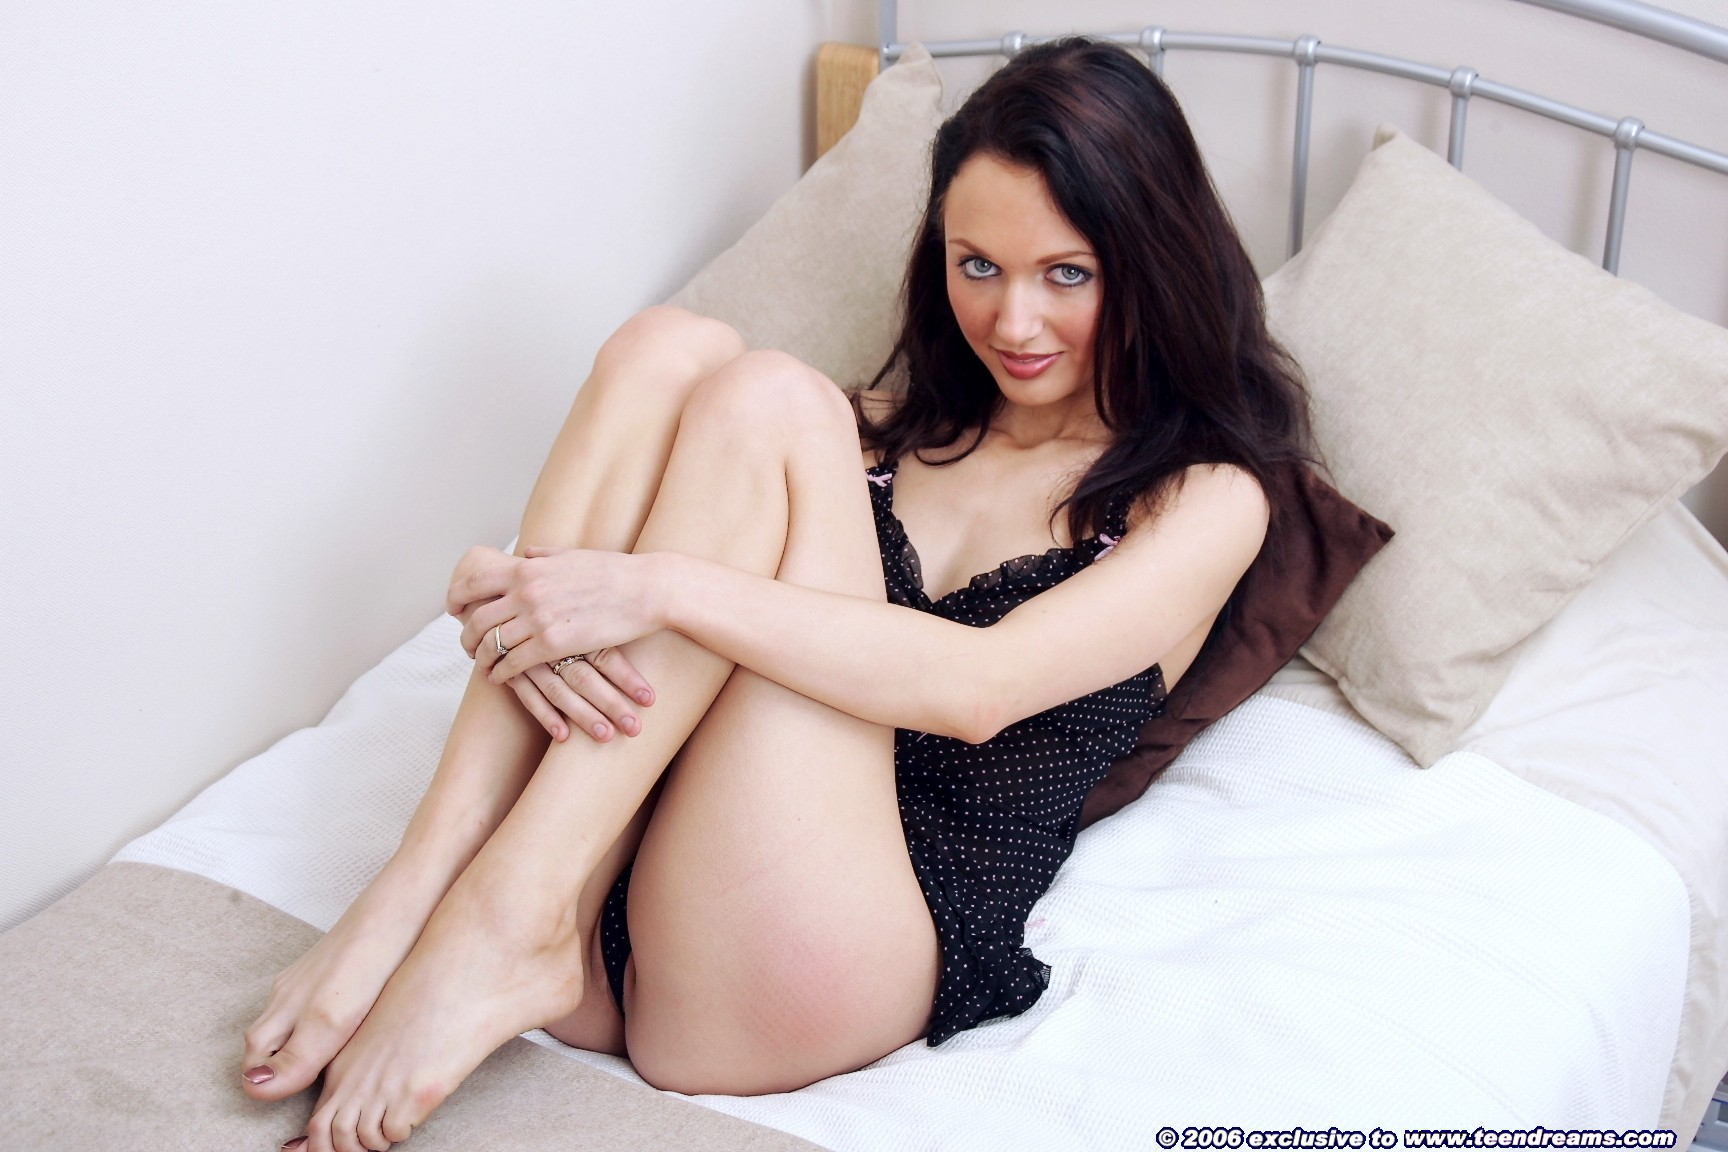 eastern-european-honey-bares-all-on-the-couch-1